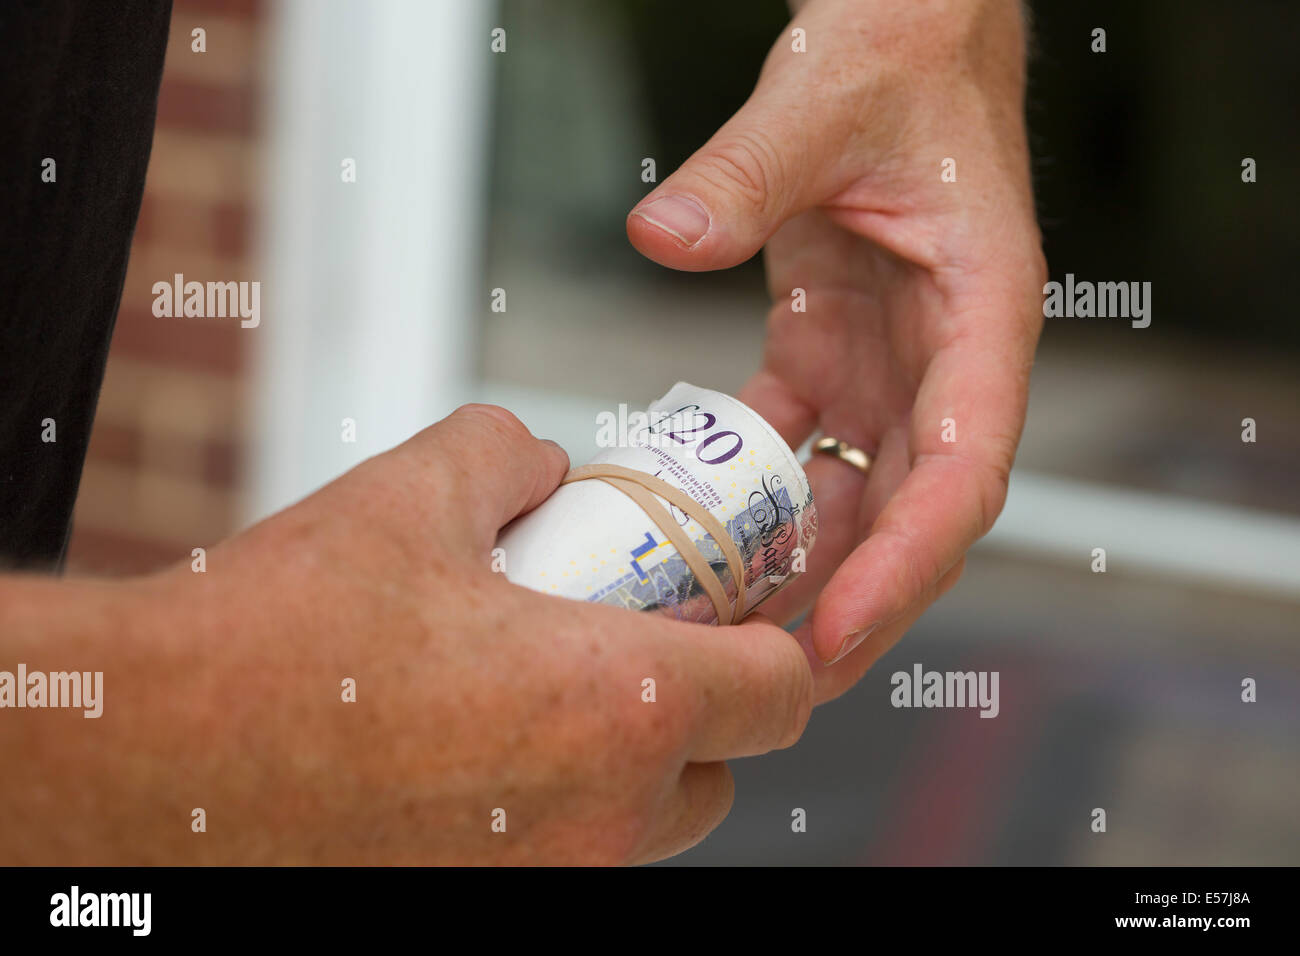 paying with cash, 2 hands and roll of money as if in payment maybe cash in hand. The cash is UK pounds sterling - Stock Image